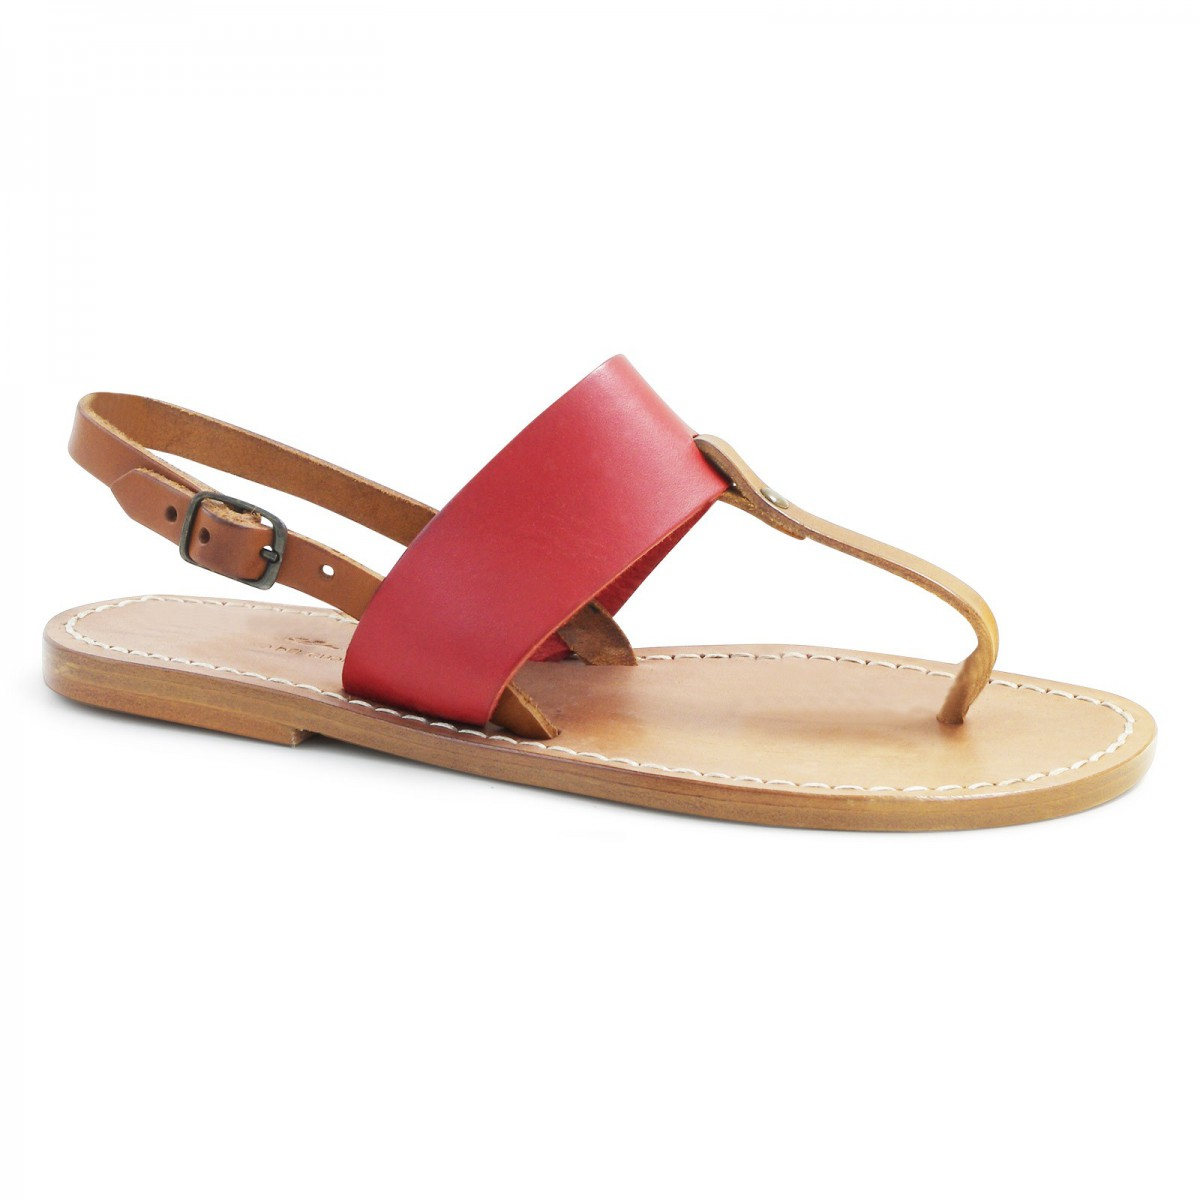 Fantastic Art Breathe 0972 Womens Flat Velcro Sandals Leather Brown New Shoes All Sizes